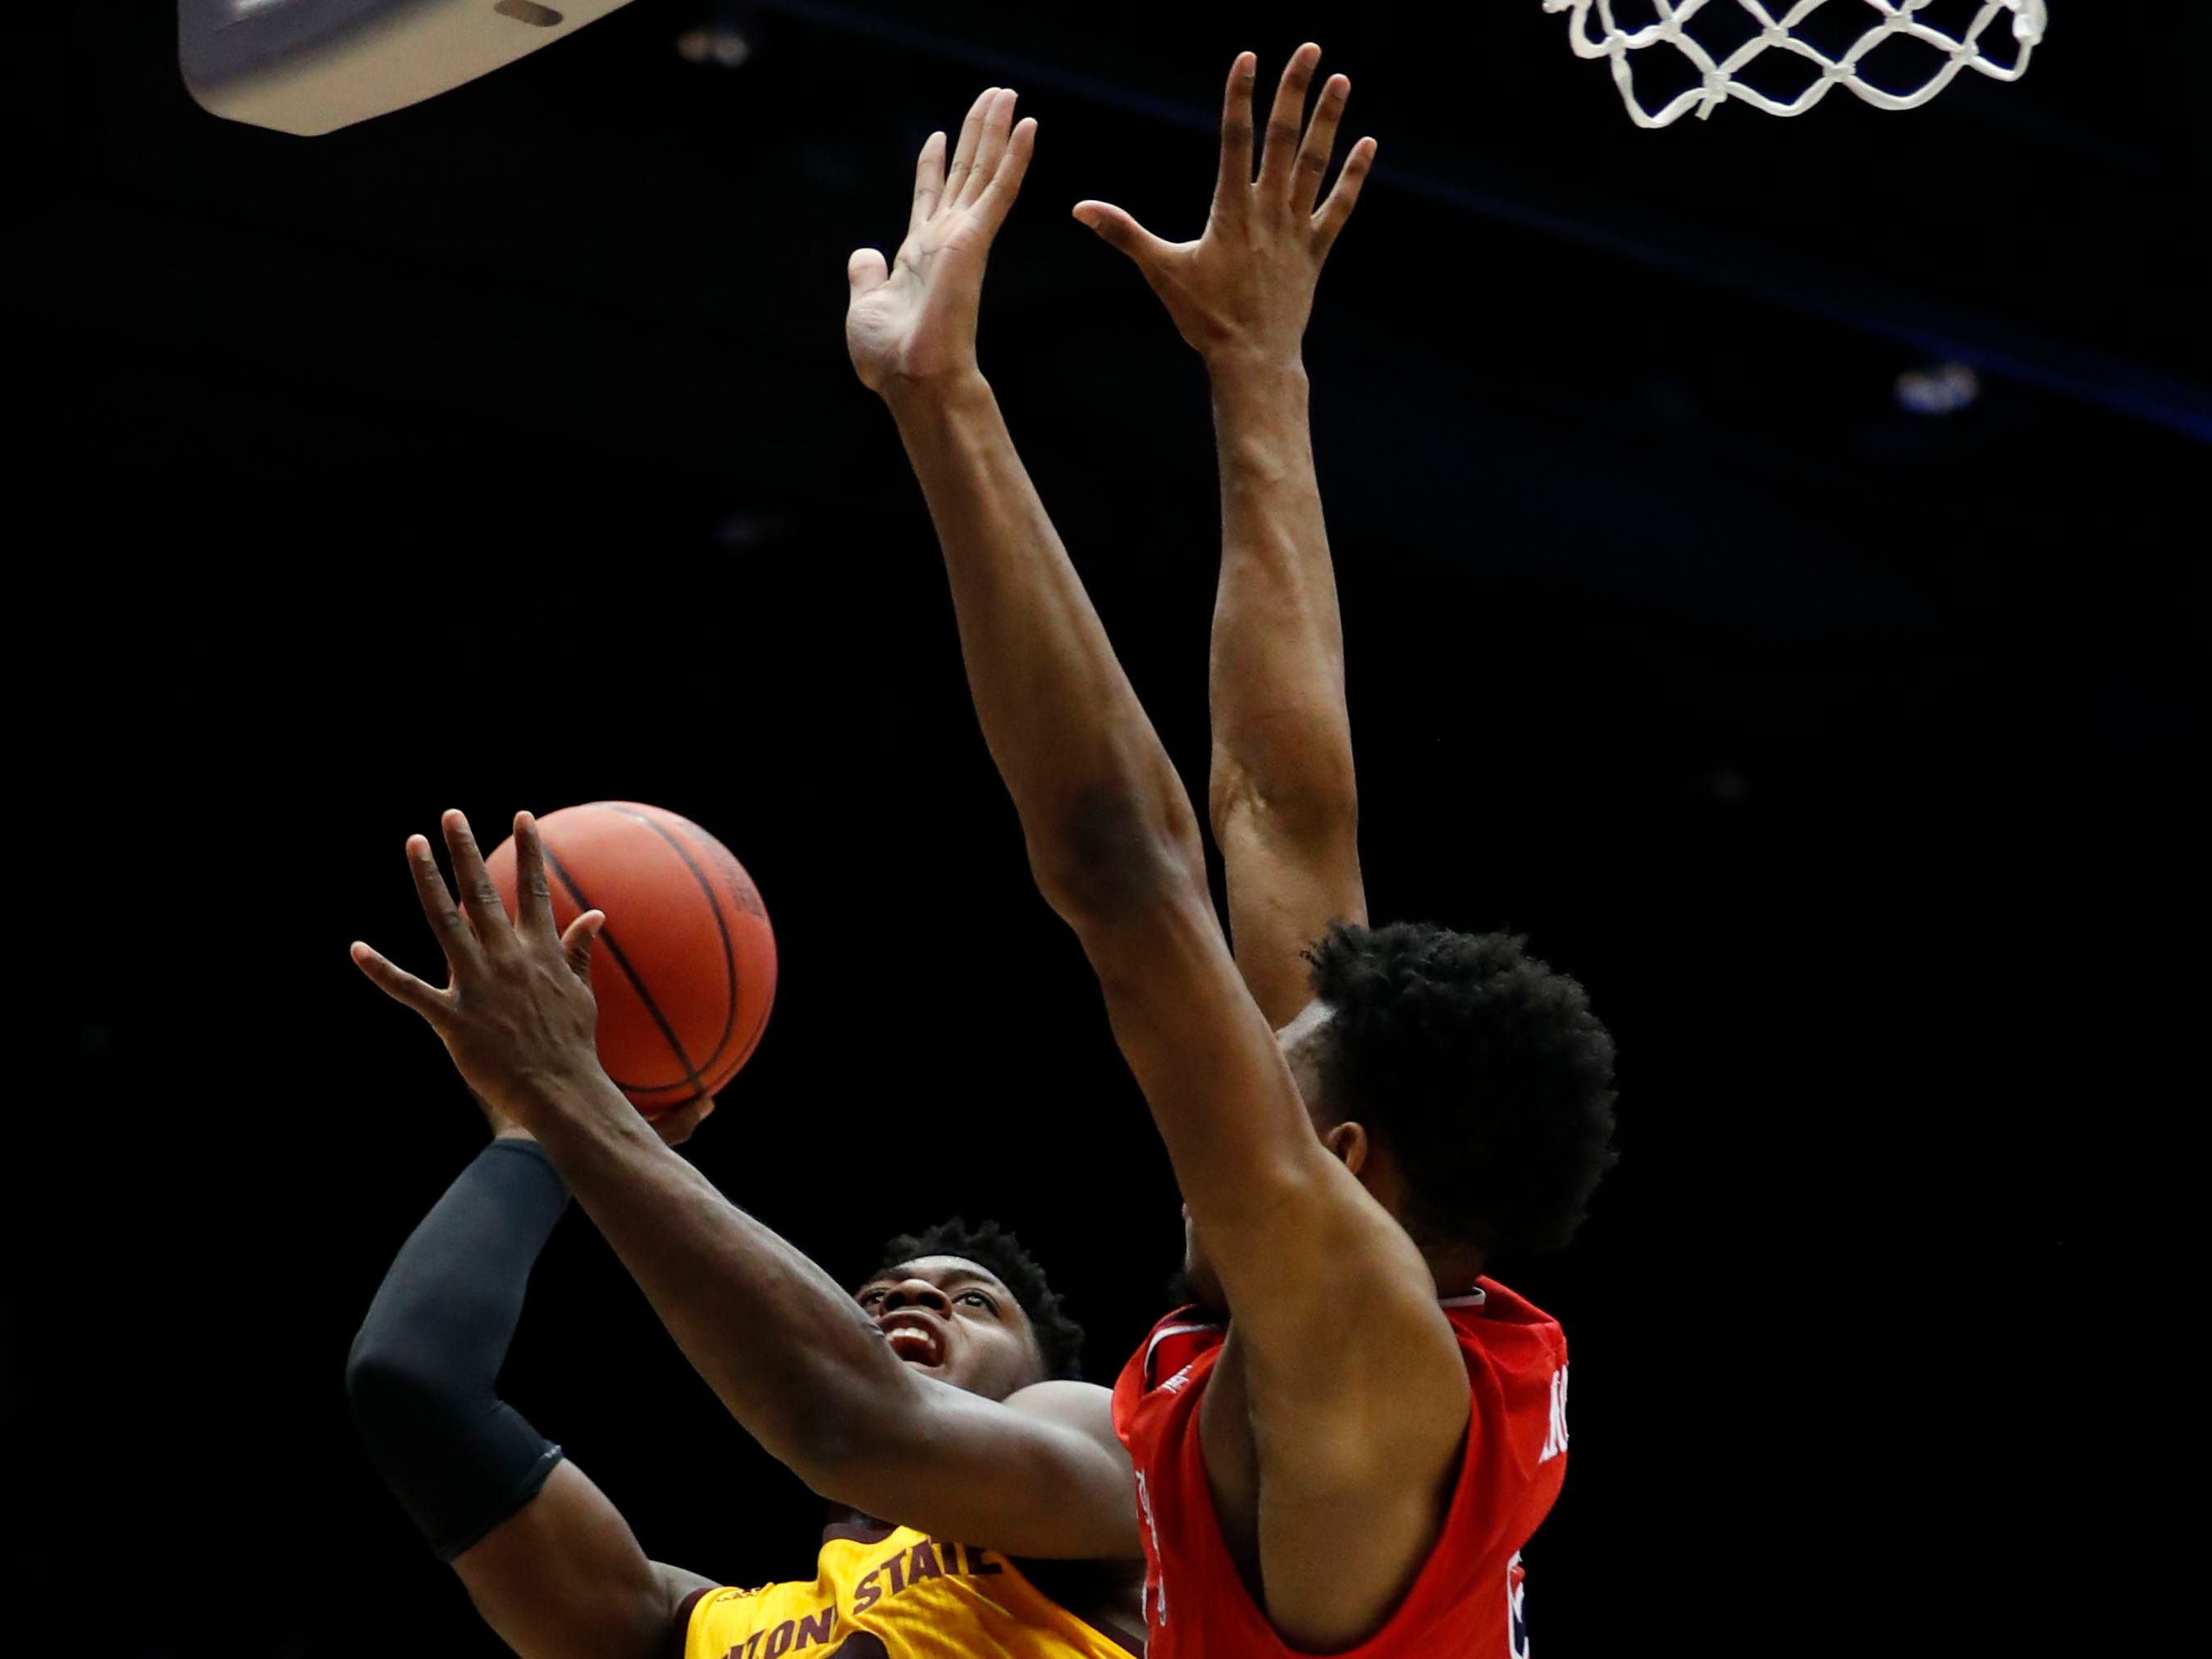 Mar 20, 2019; Dayton, OH, USA; Arizona State Sun Devils guard Luguentz Dort (0) goes to the basket defend by St. John's Red Storm guard Justin Simon (5) in the First Four of the 2019 NCAA Tournament at Dayton Arena. Mandatory Credit: Rick Osentoski-USA TODAY Sports